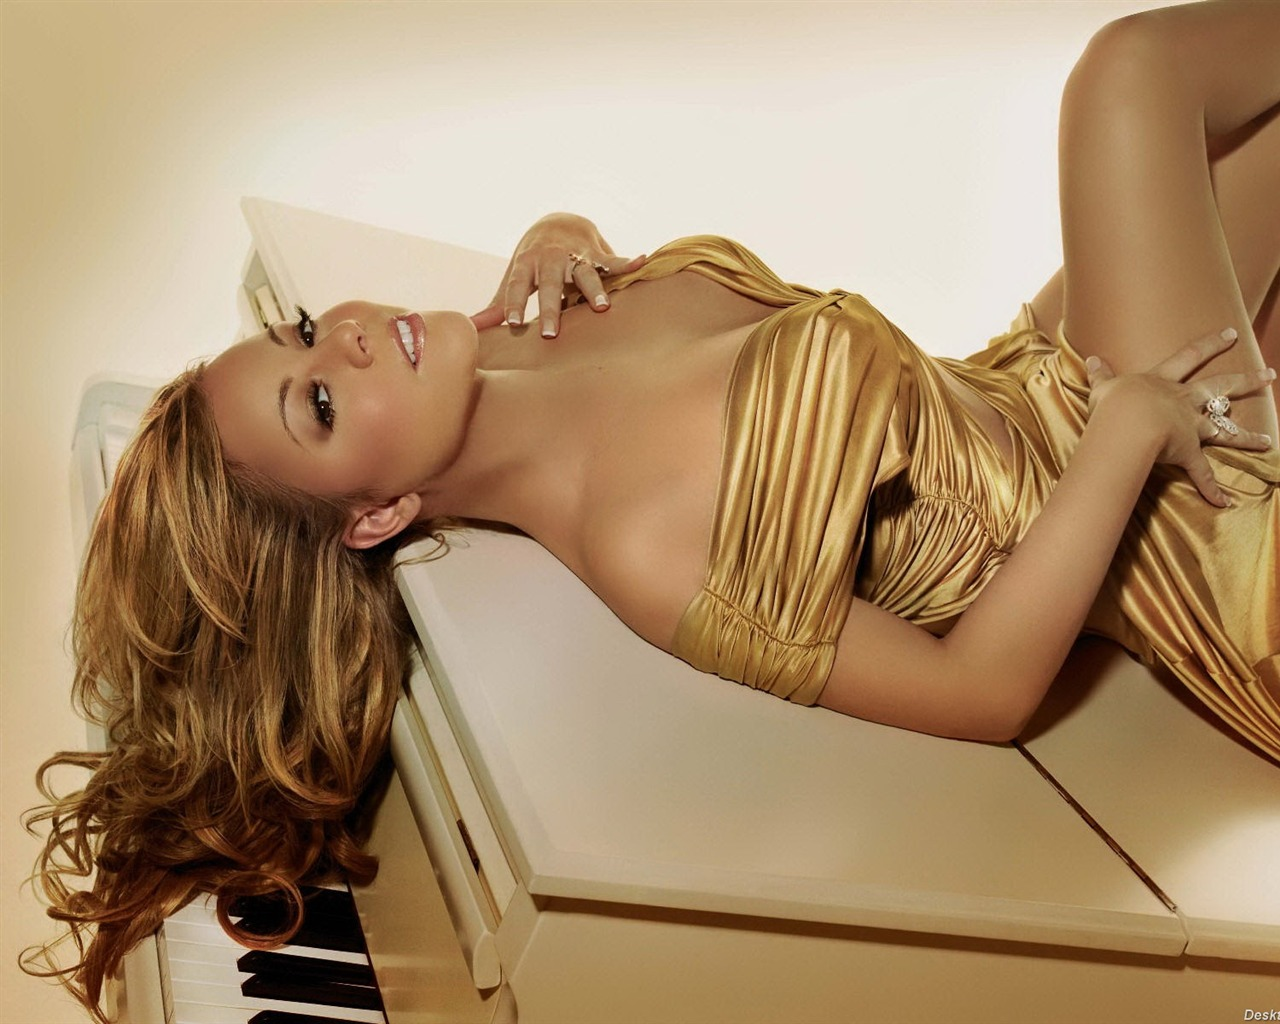 Mariah Carey #036 - 1280x1024 Wallpapers Pictures Photos Images